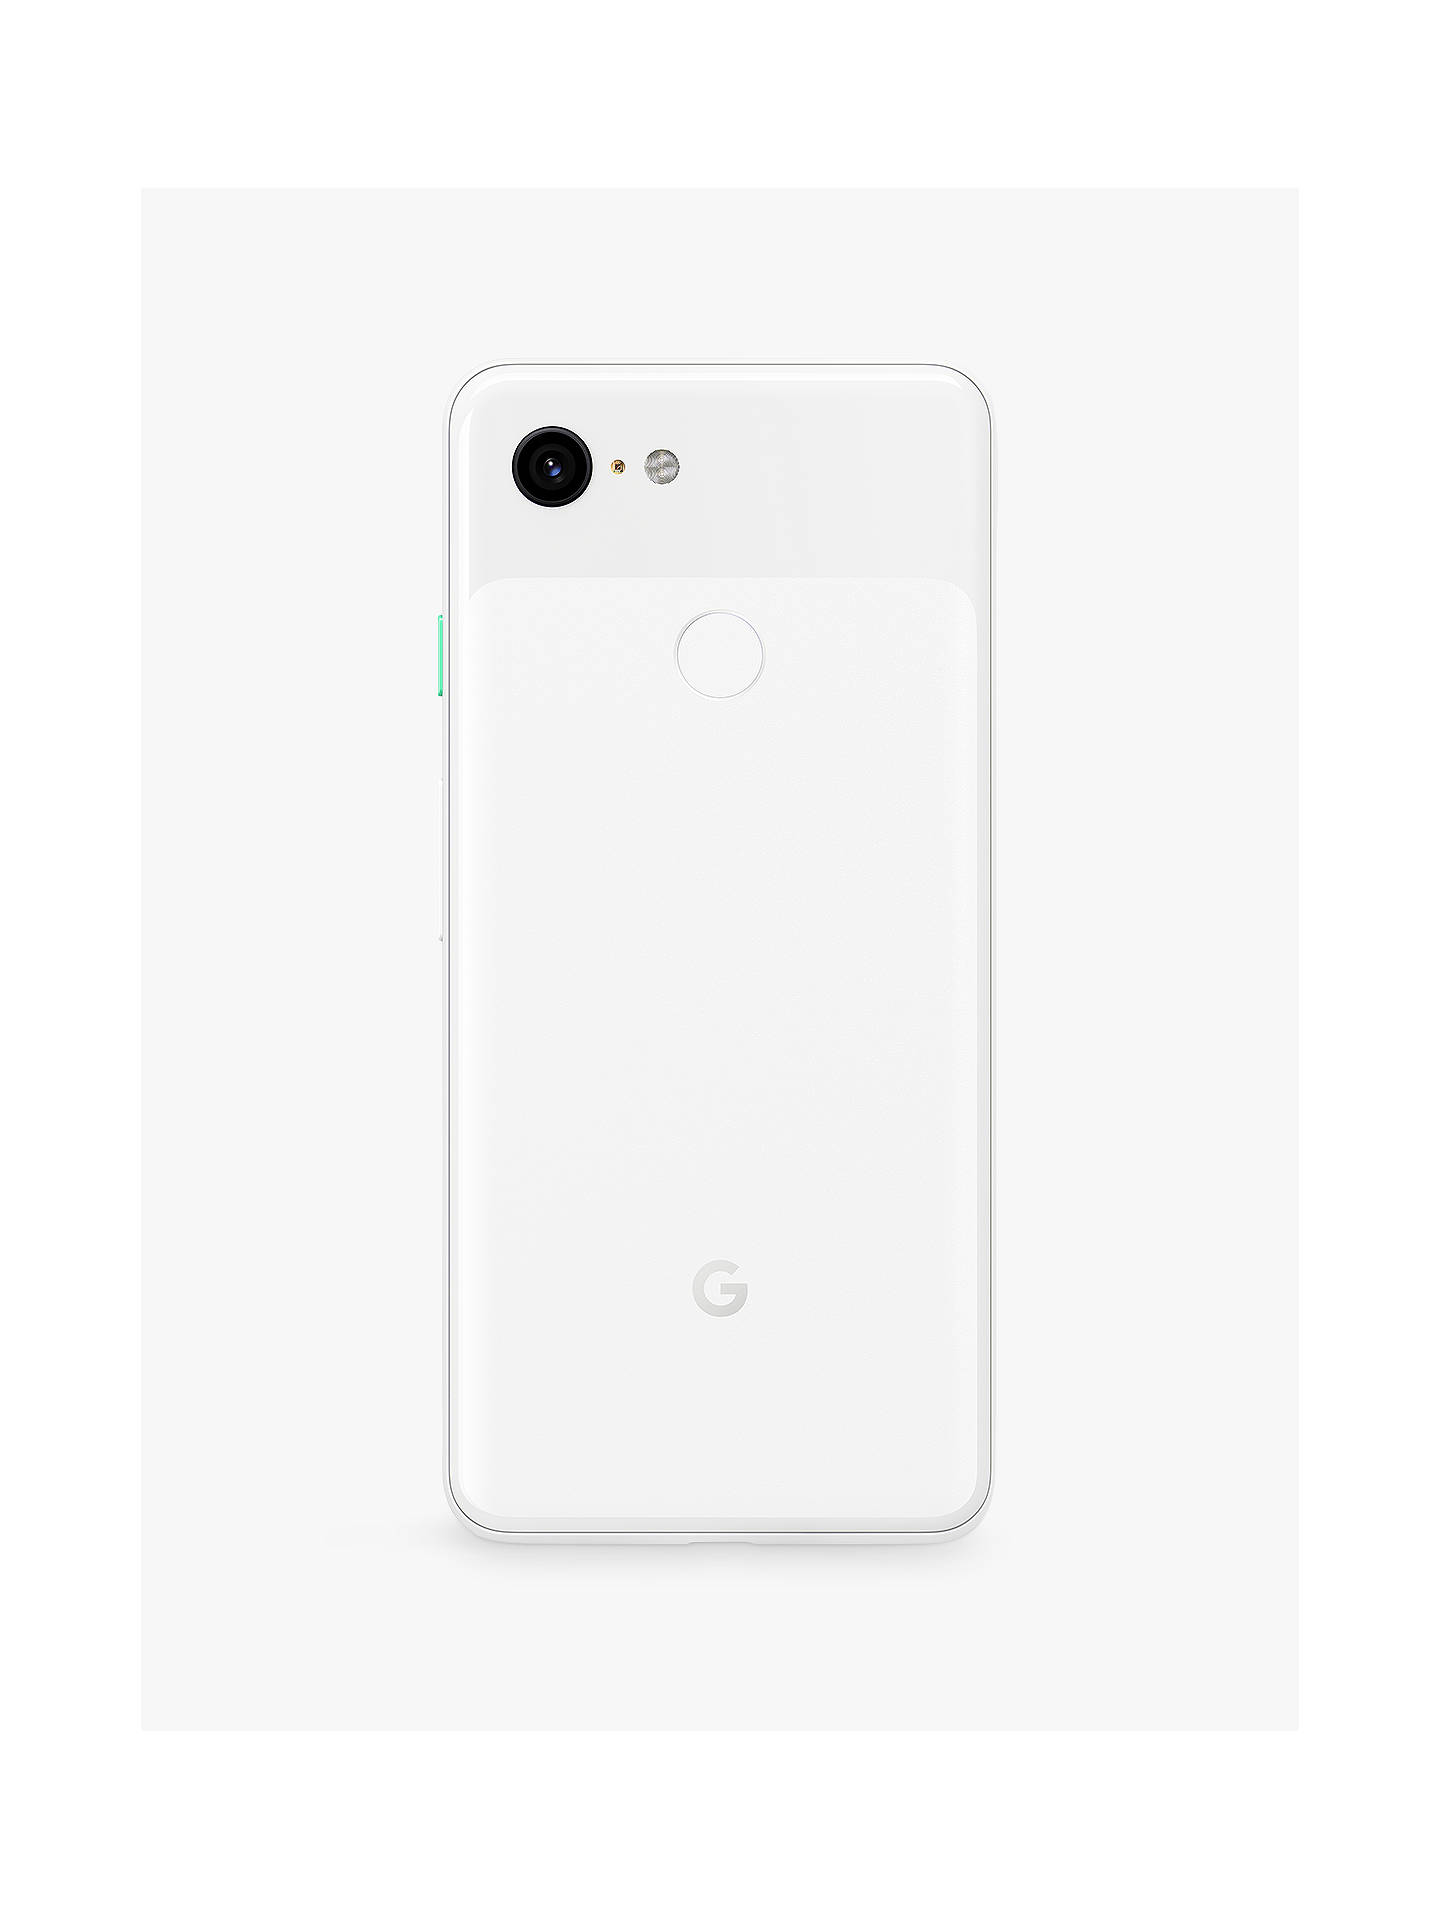 "Buy Google Pixel 3 Smartphone, Android, 5.5"", 4G LTE, SIM Free, 64GB, Clearly White Online at johnlewis.com"